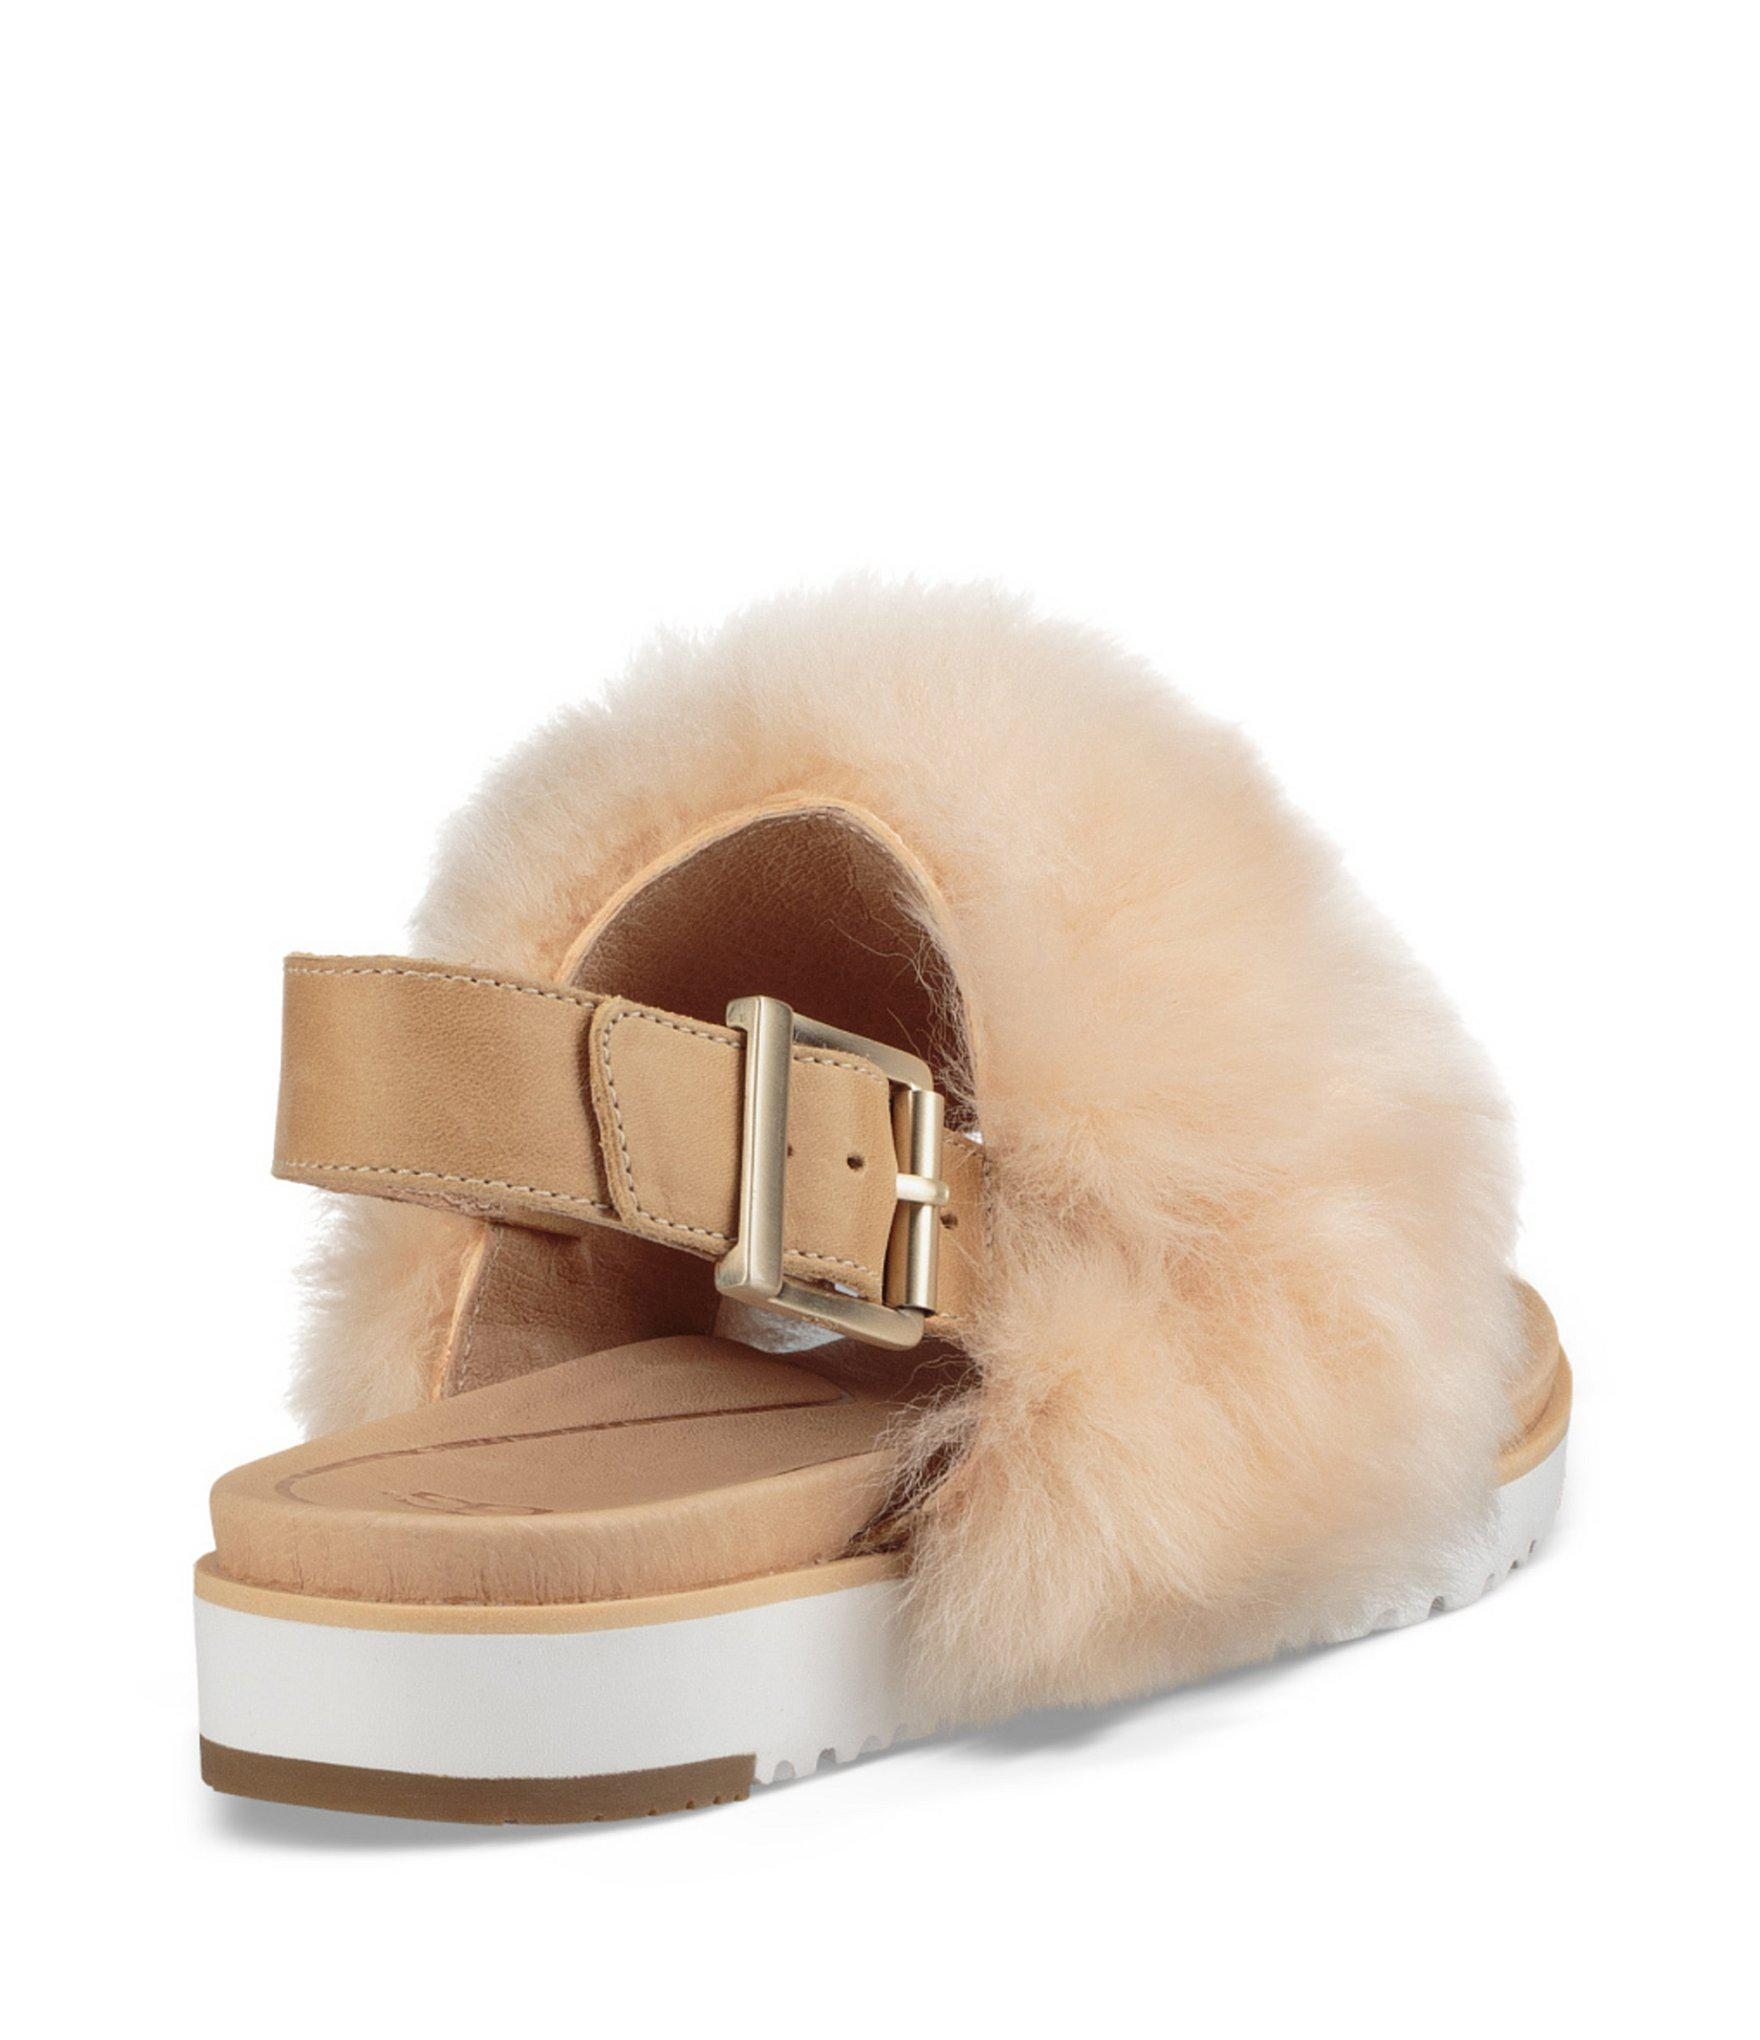 b2ae0e28765c Ugg - Multicolor Holly Sheepskin Fur Sandals - Lyst. View fullscreen